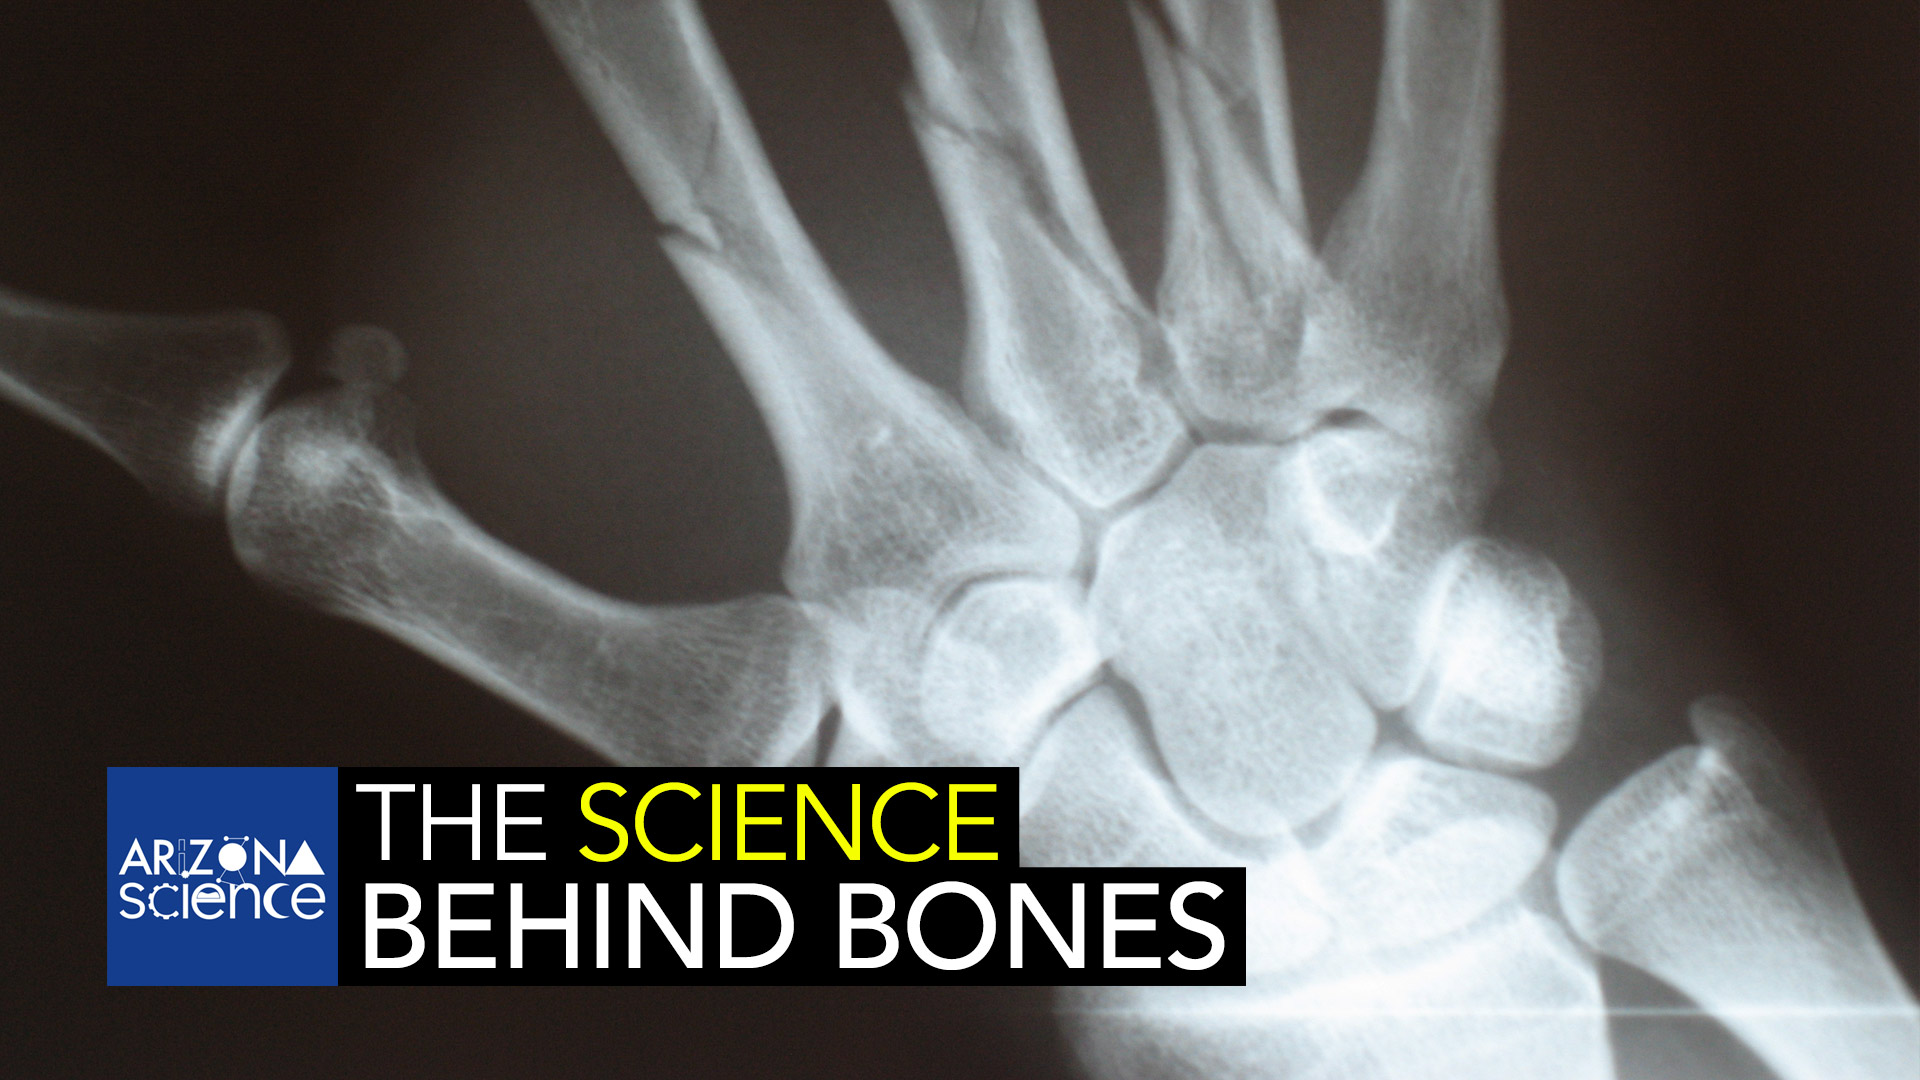 UA Professor John Szivek wants to make bones better.